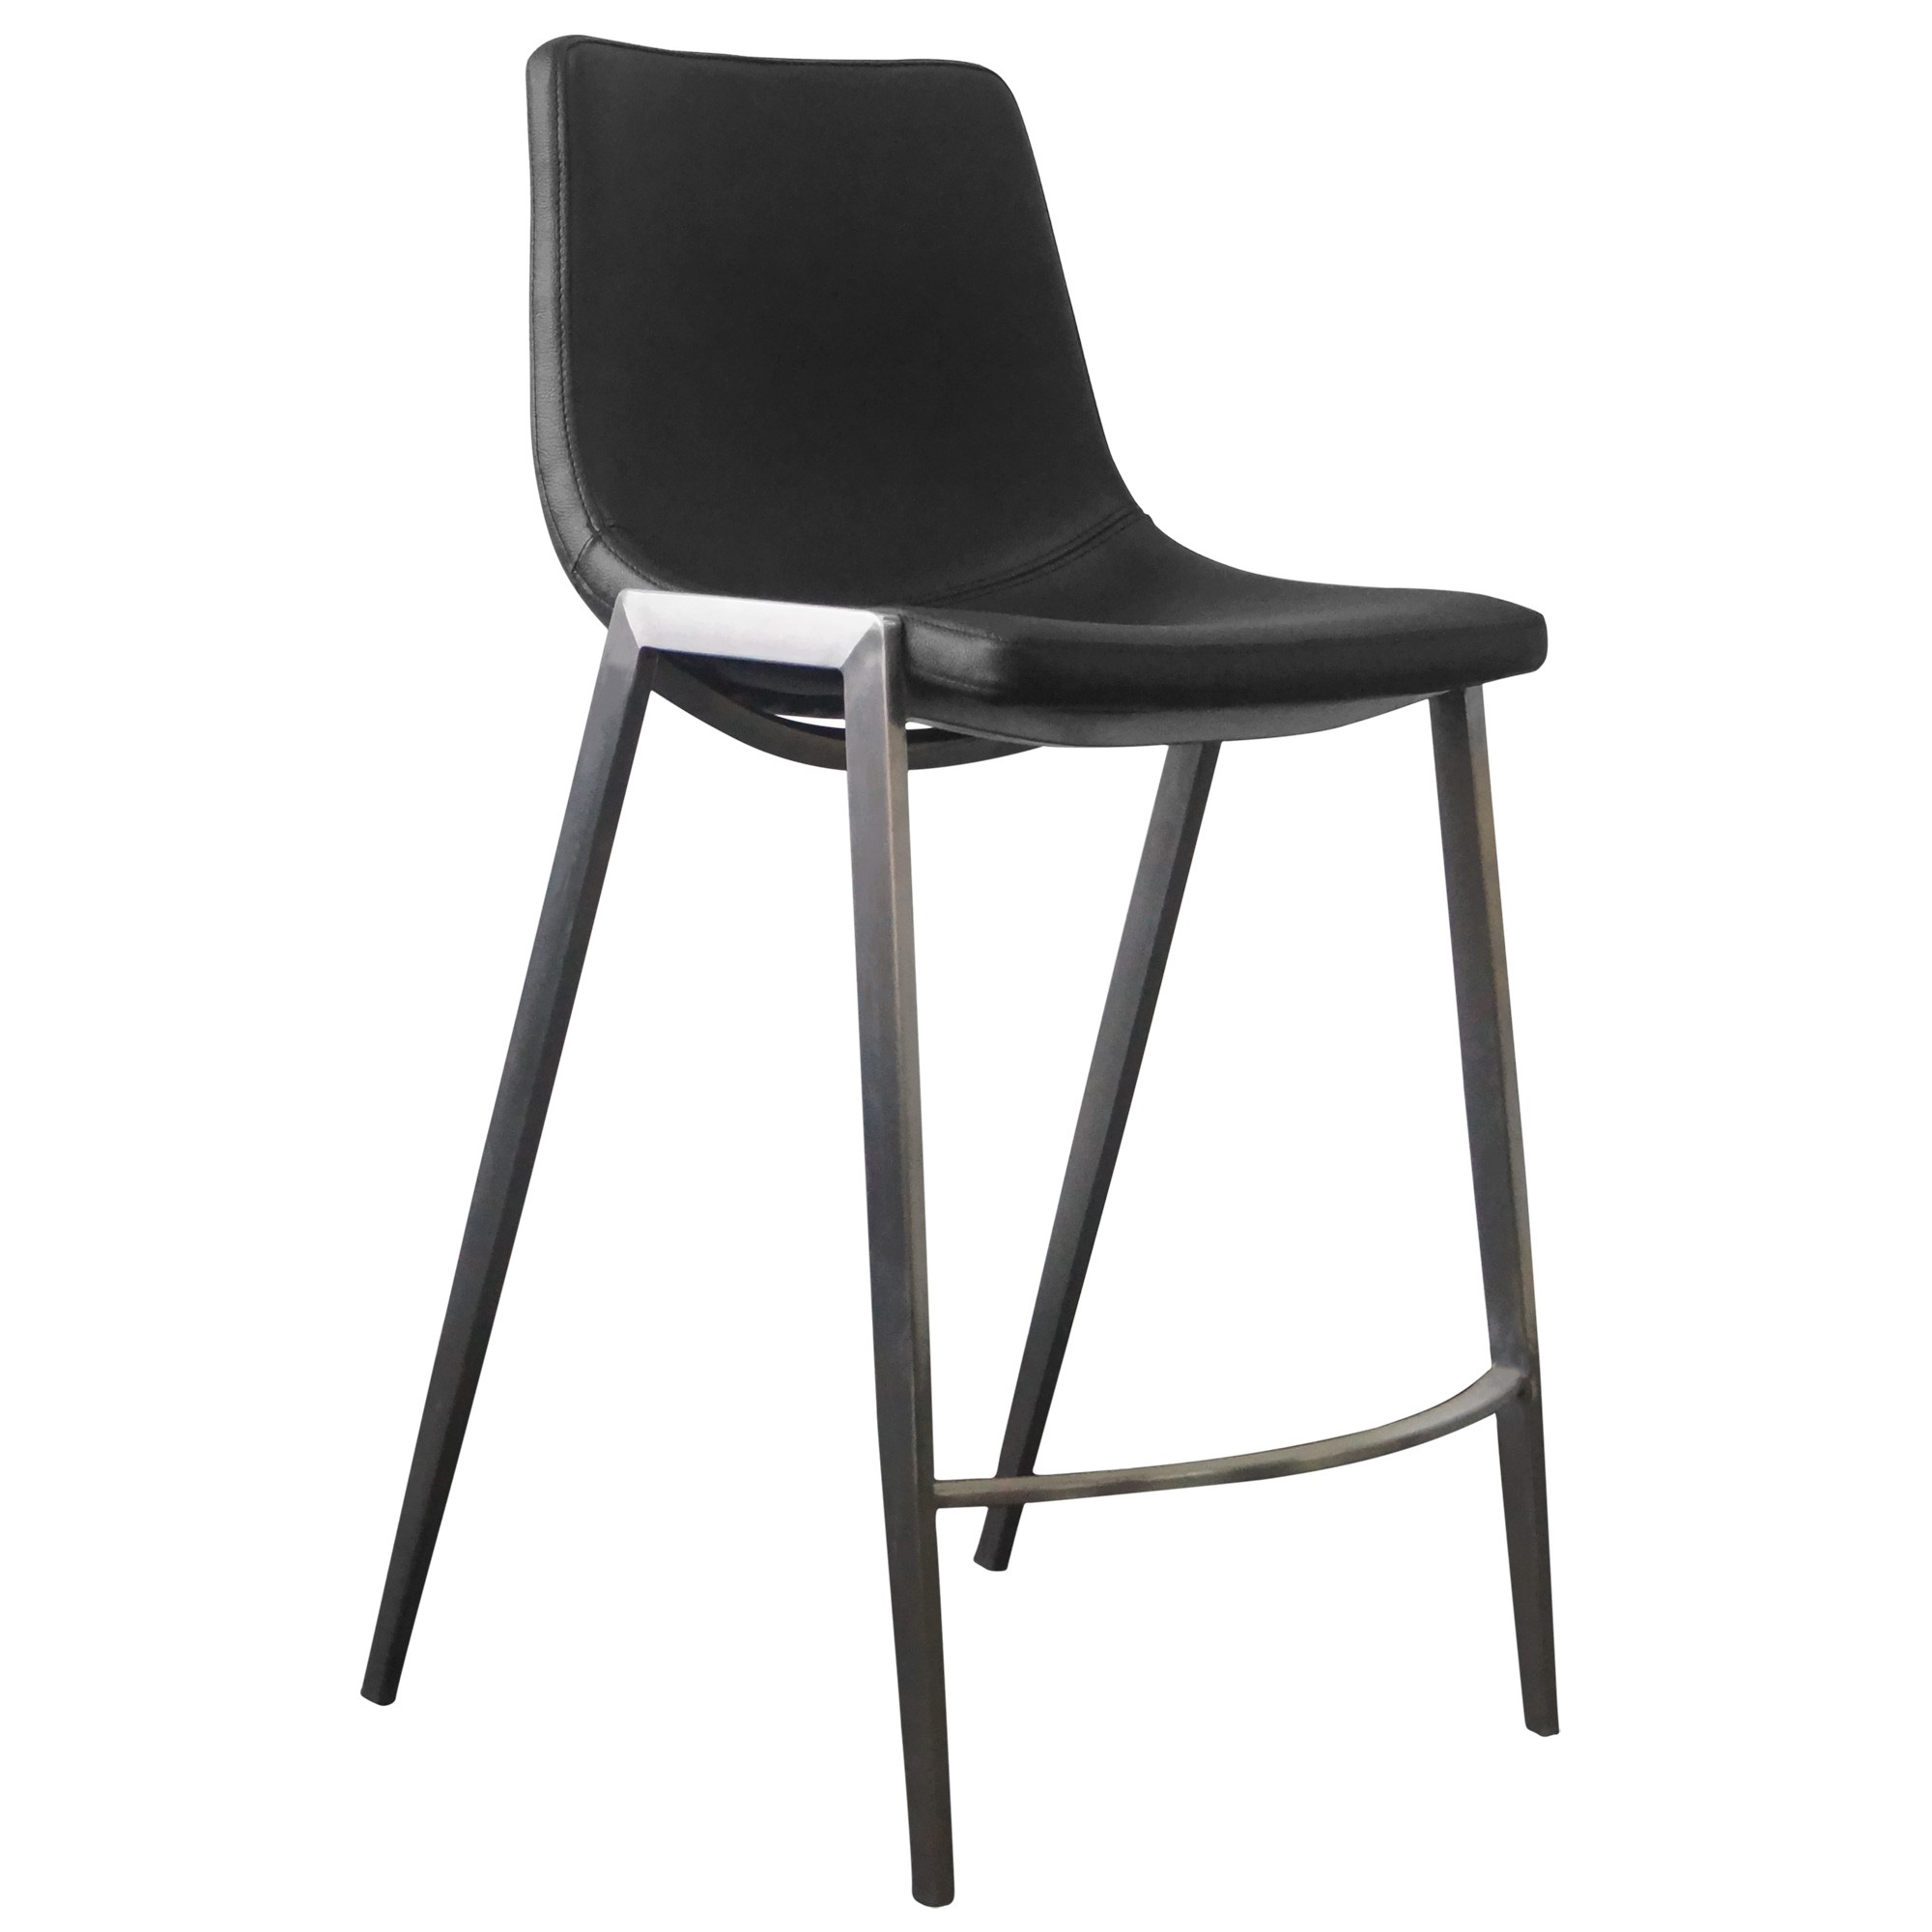 Nadia PU Leather Counter Stool, Black / Brushed Stainless Steel